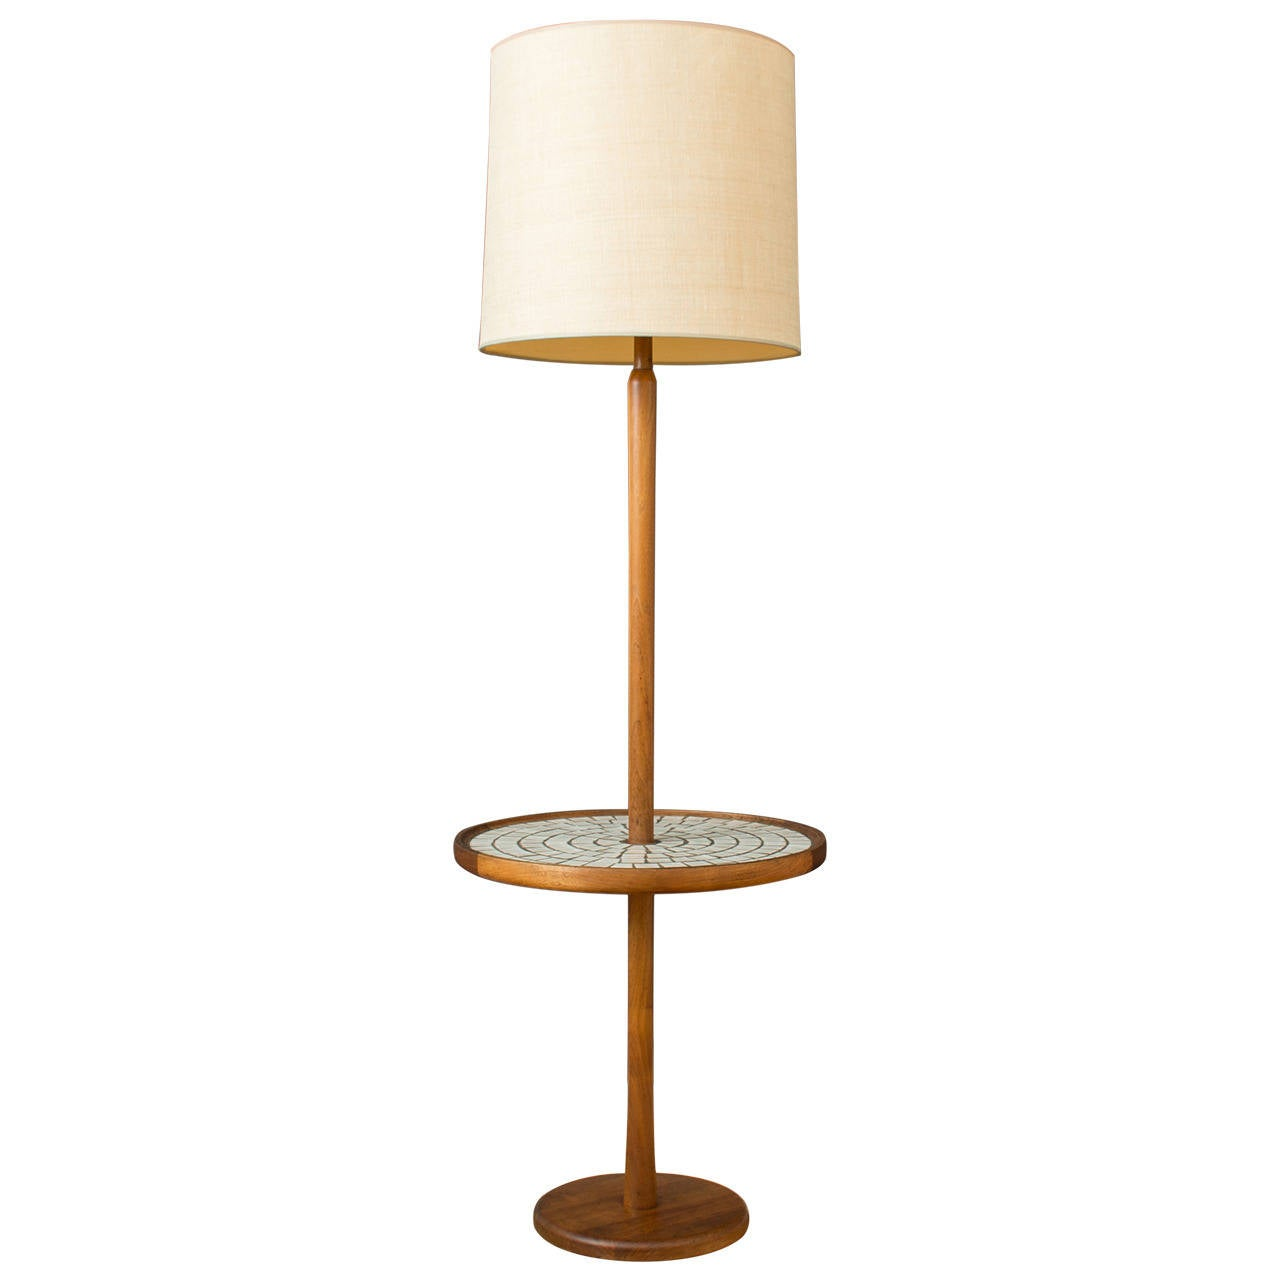 Mosaic floor lamps uk images for White mosaic floor lamp